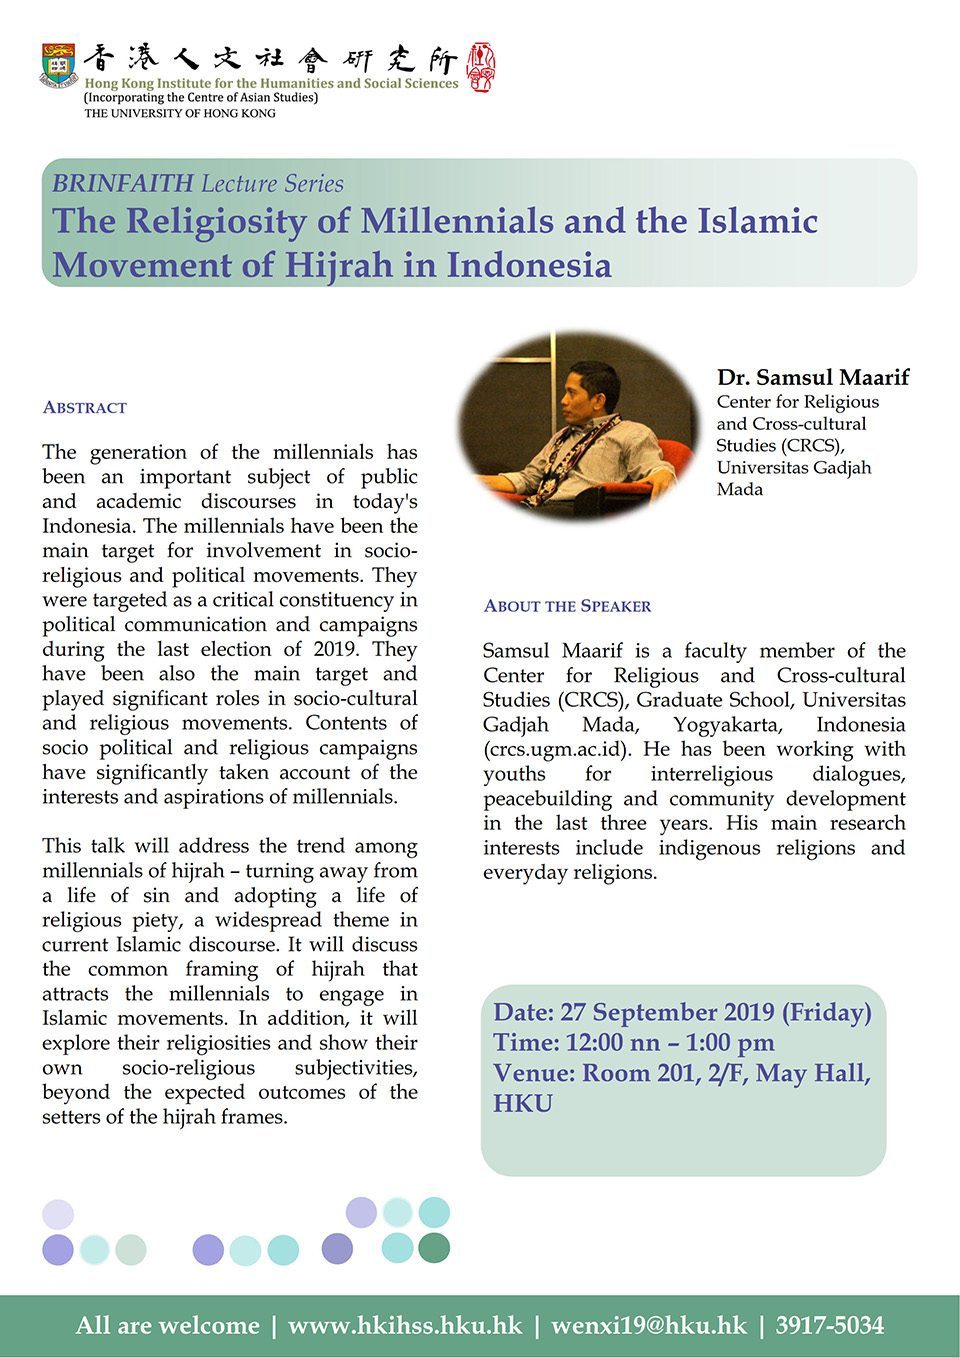 """BRINFAITH Lecture Series on """"The Religiosity of Millennials and the Islamic Movement of Hijrah in Indonesia"""" by Dr. Samsul Maarif (September 27, 2019)"""